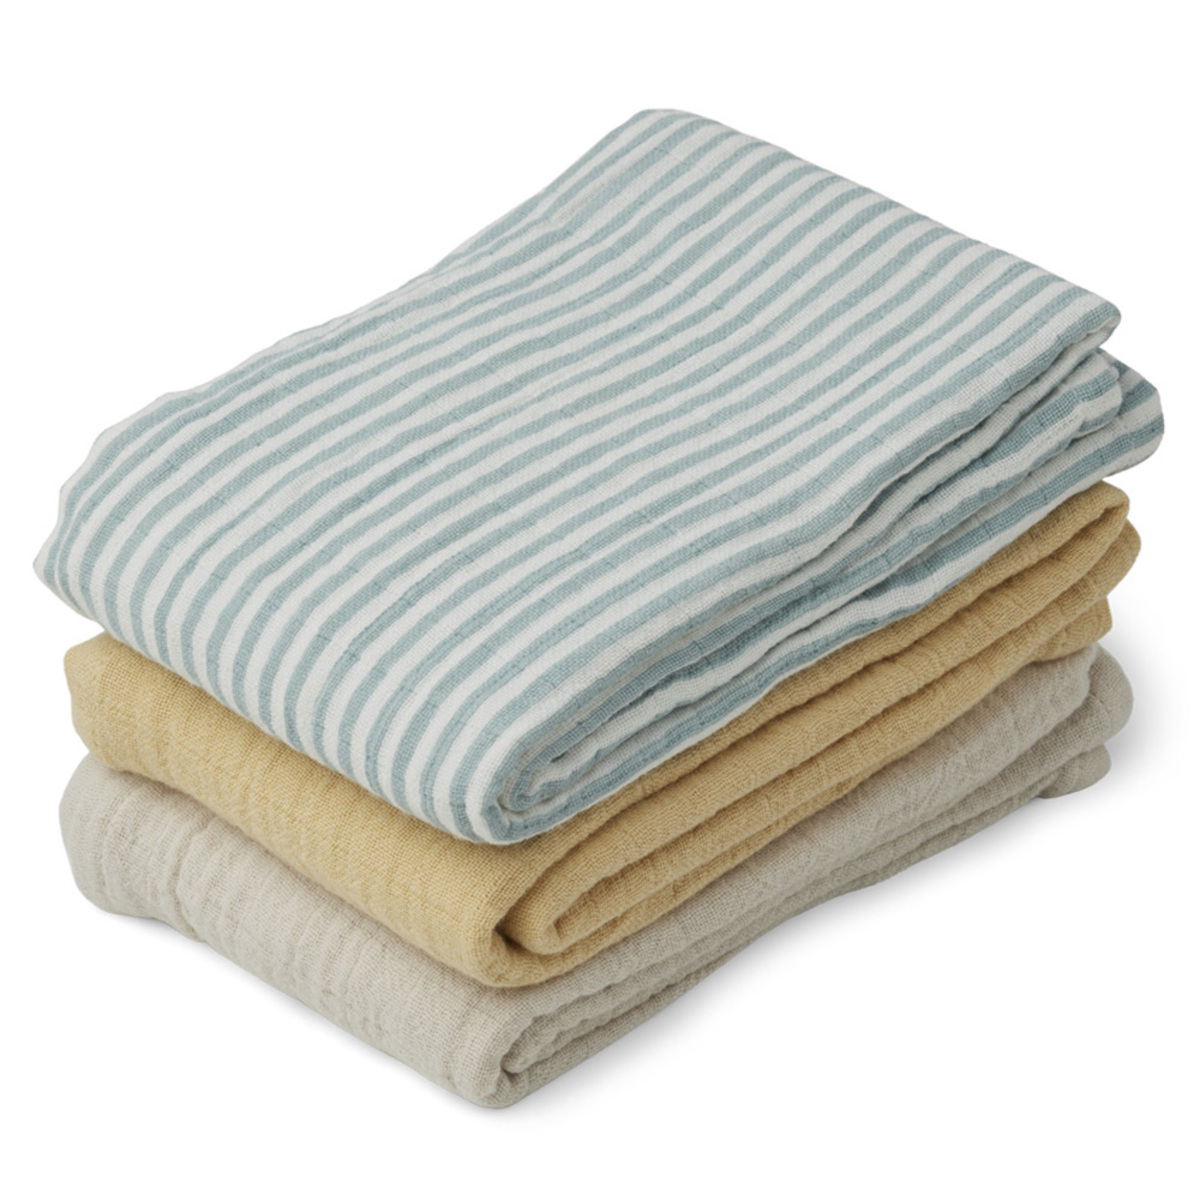 Lange Lot de 3 Langes Line - Sea Blue Stripes Lot de 3 Langes Line - Sea Blue Stripes